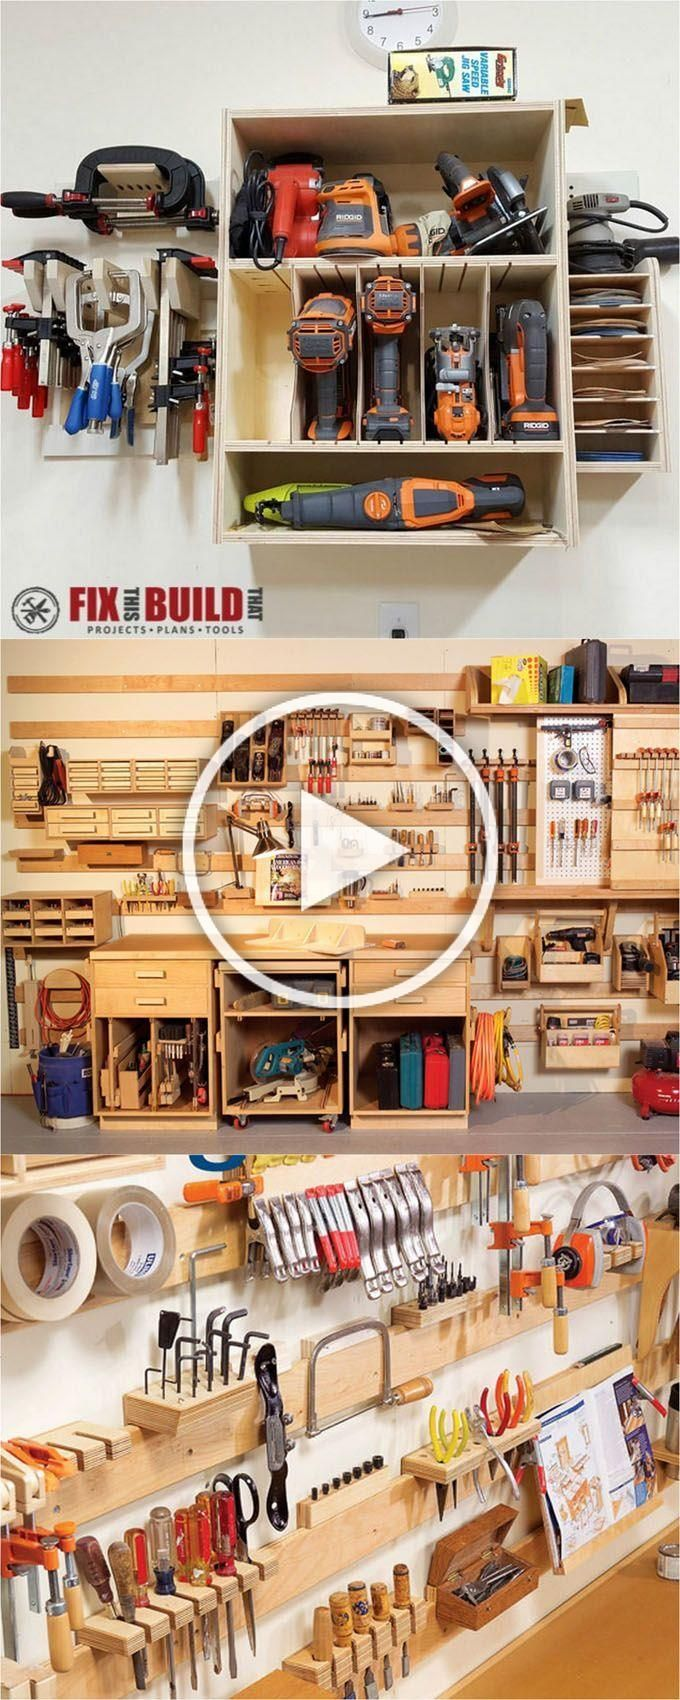 21 great ways to completely organize your workshop or craft room how to best utilize pegboards shelving closet and wall spaces and much more  A Piece Of Rainbow